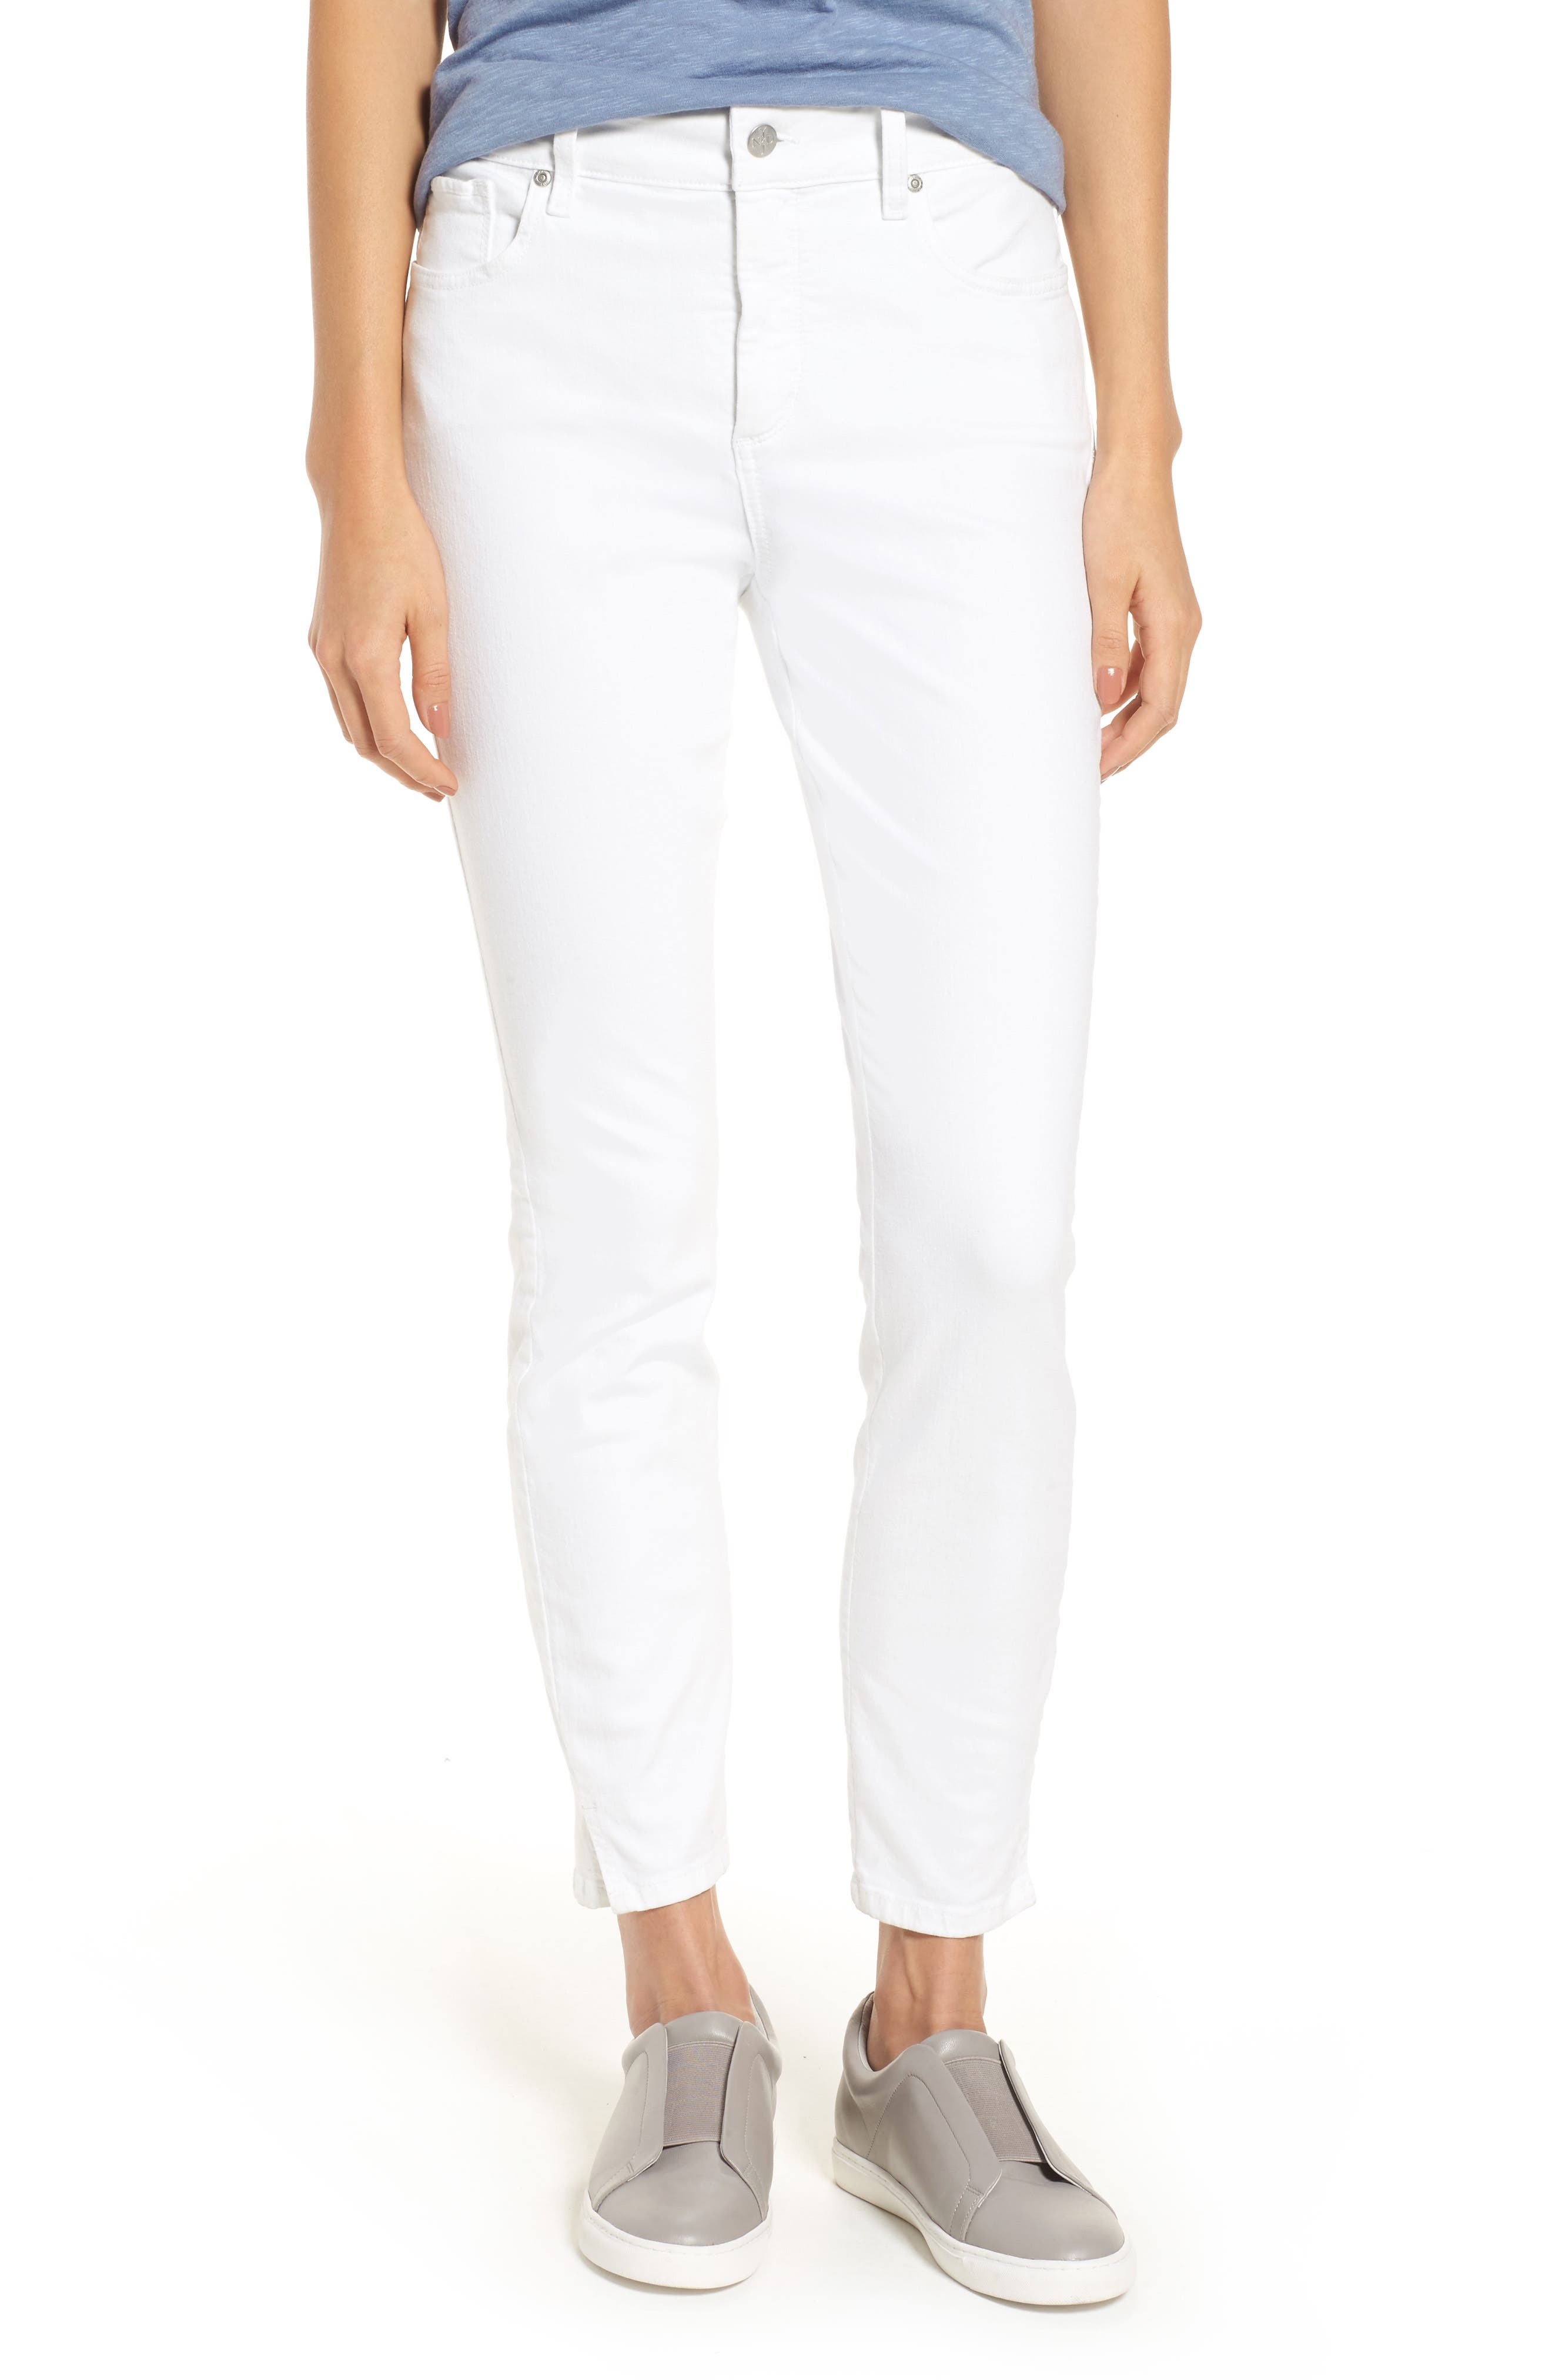 NYDJ Ami Stretch Ankle Skinny white Jeans (Regular & Petite)